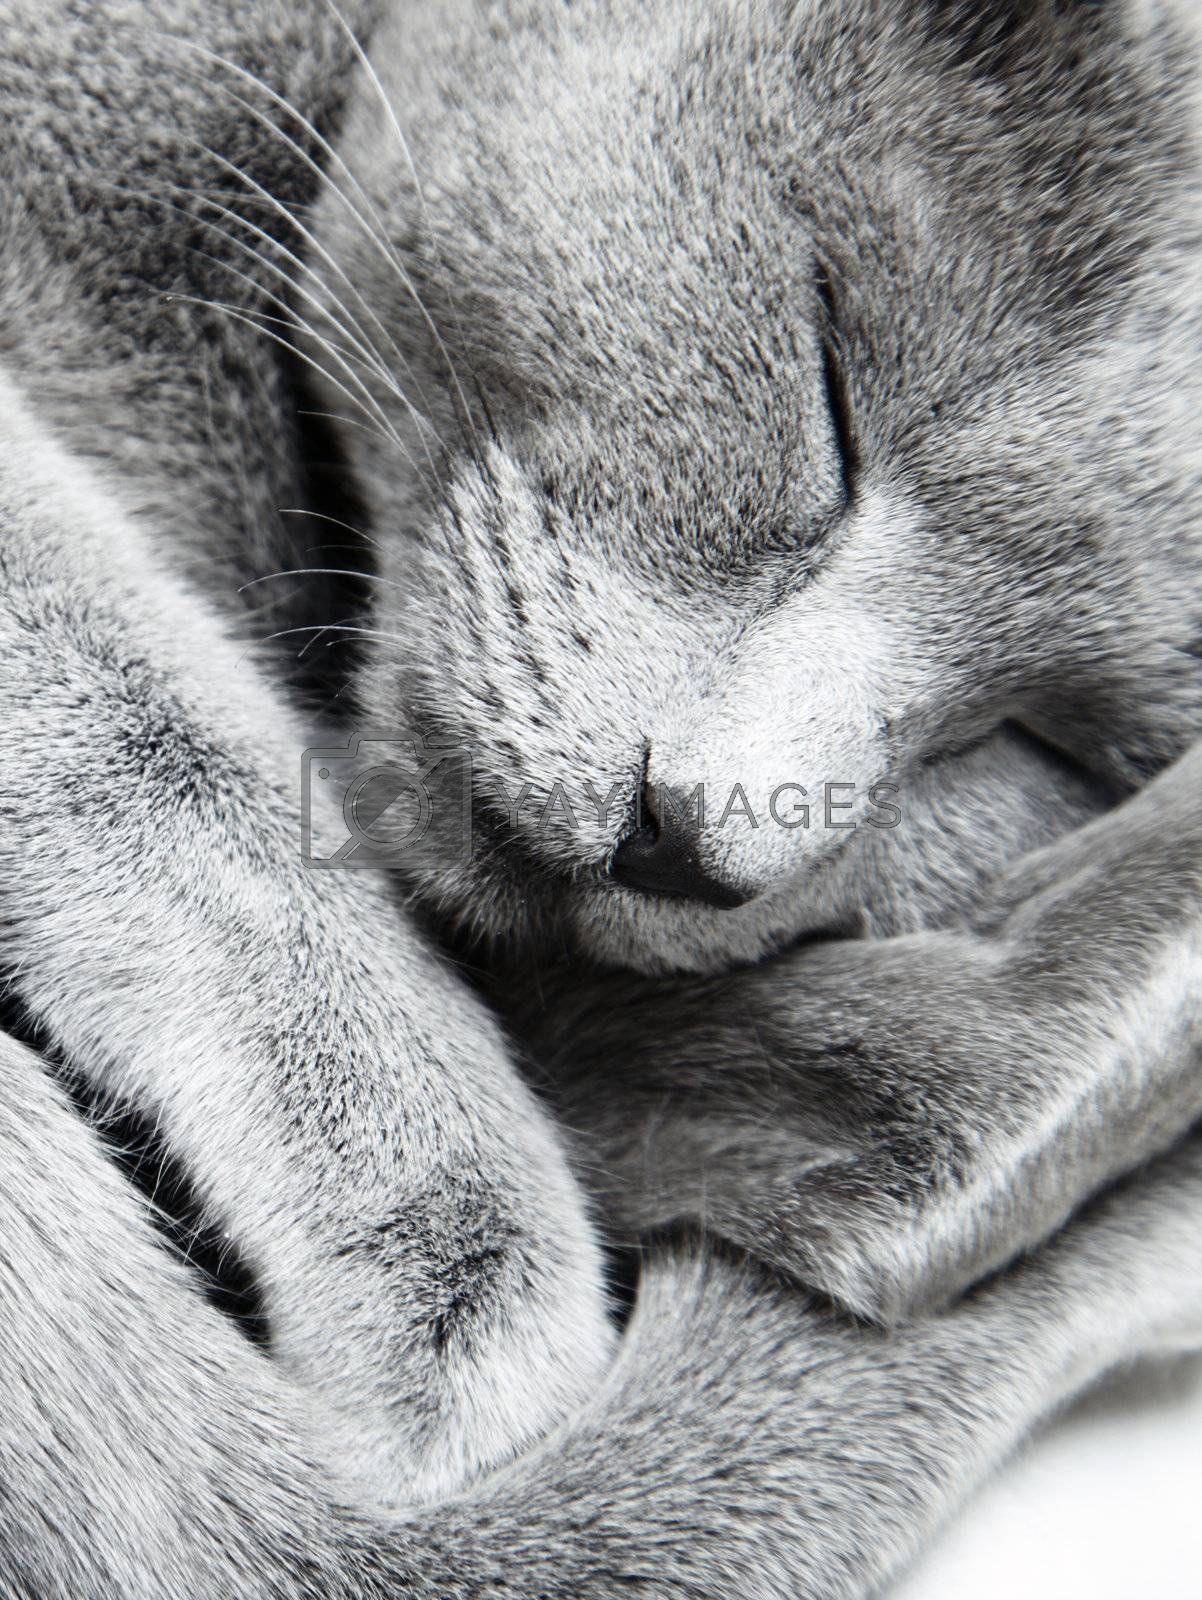 Russian blue cat sleeping indoors. Natural light and colors